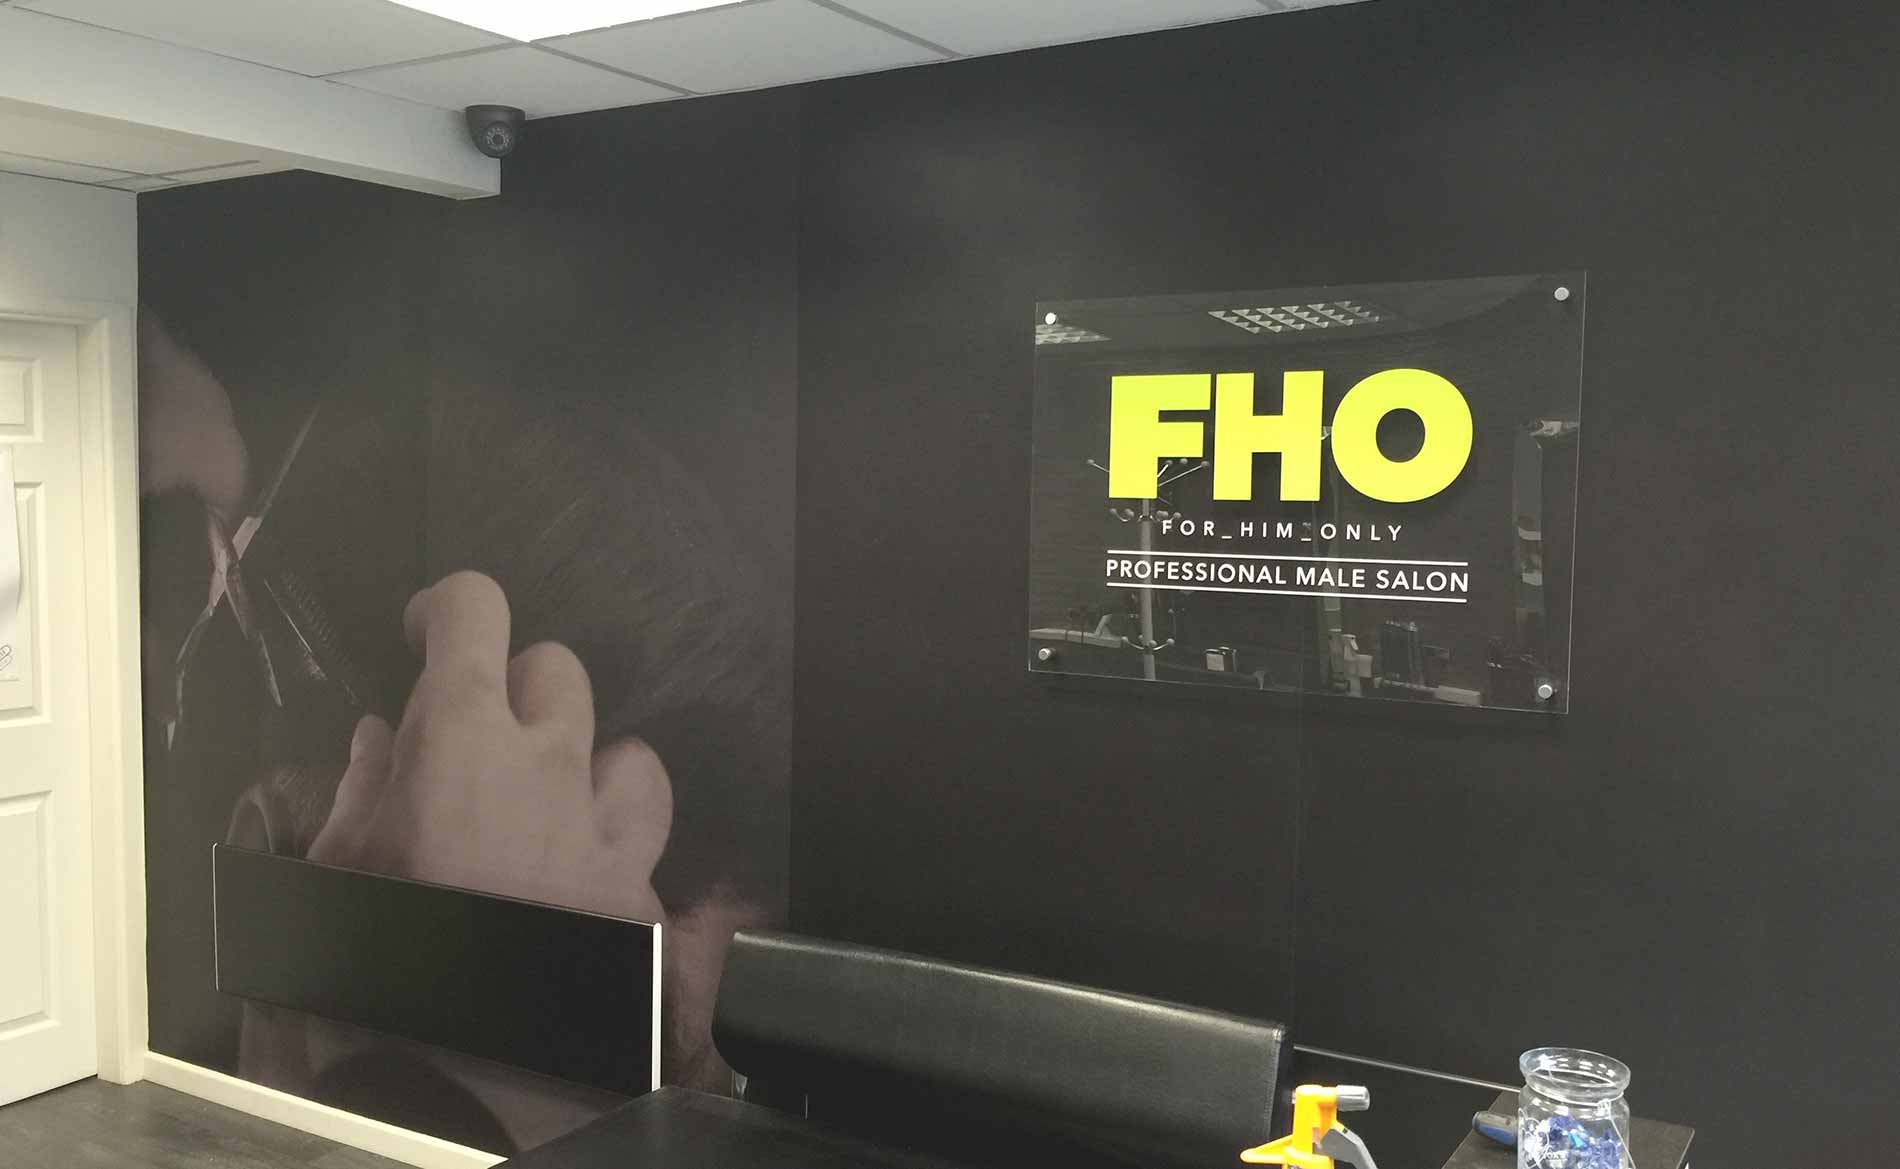 Wallpaper & Coverings, FHO Barbers Hanley, Signage, Stoke-on-Trent, Staffordshire